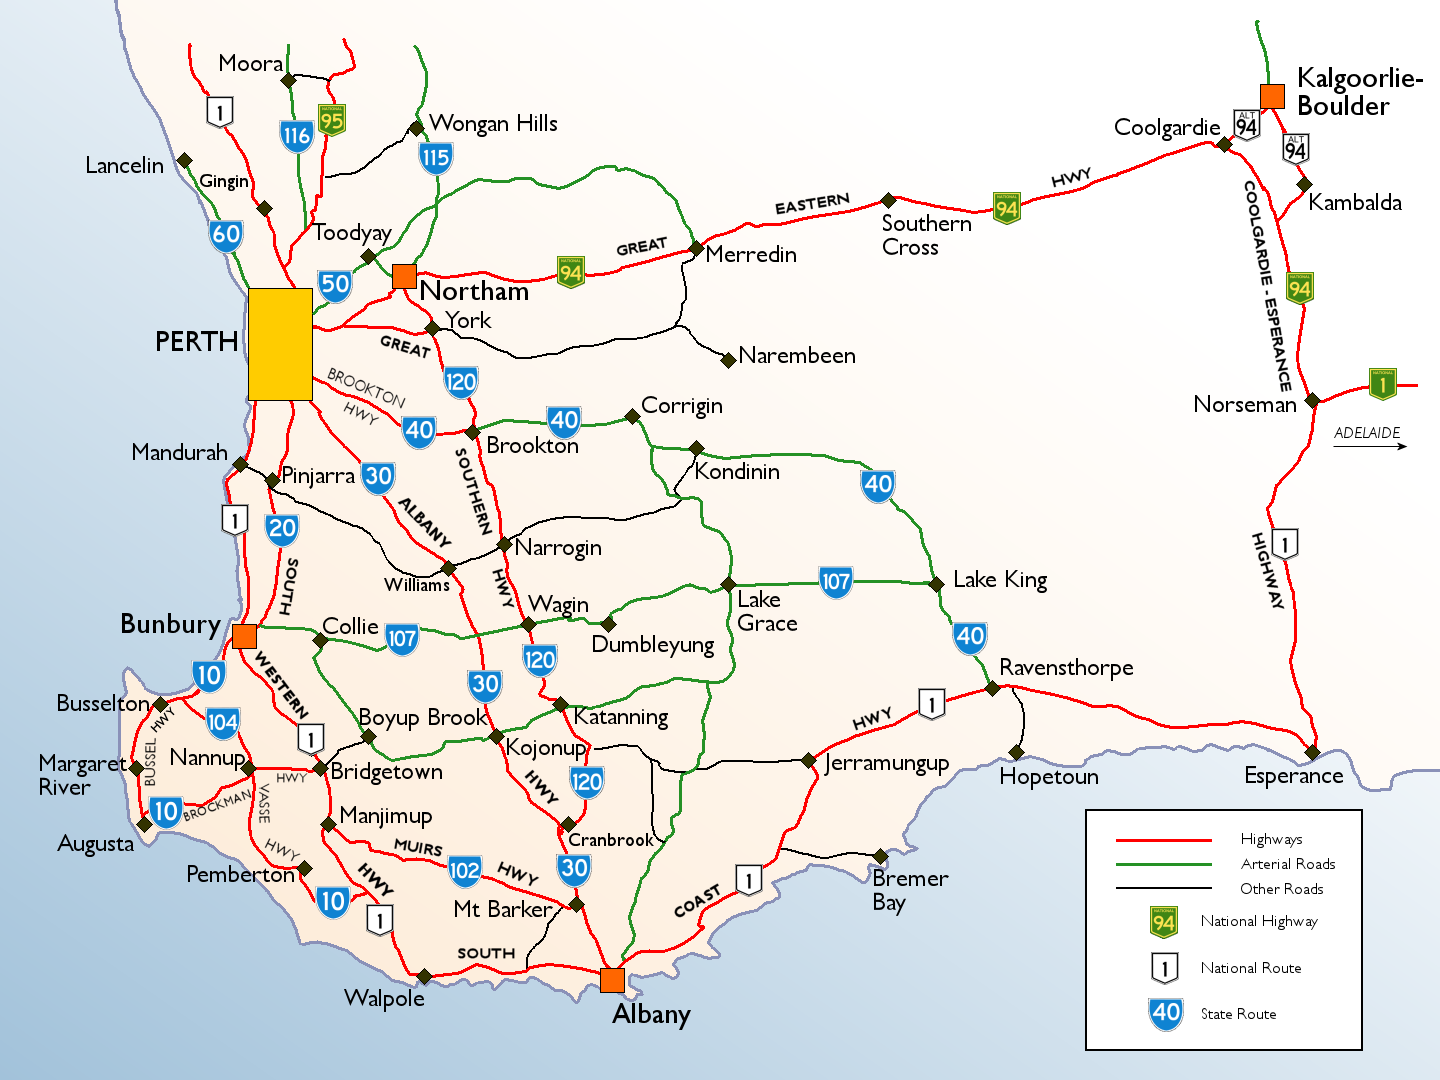 Map Of South Western Australia.South Western Australia Roads Maps Of Australia Australasia